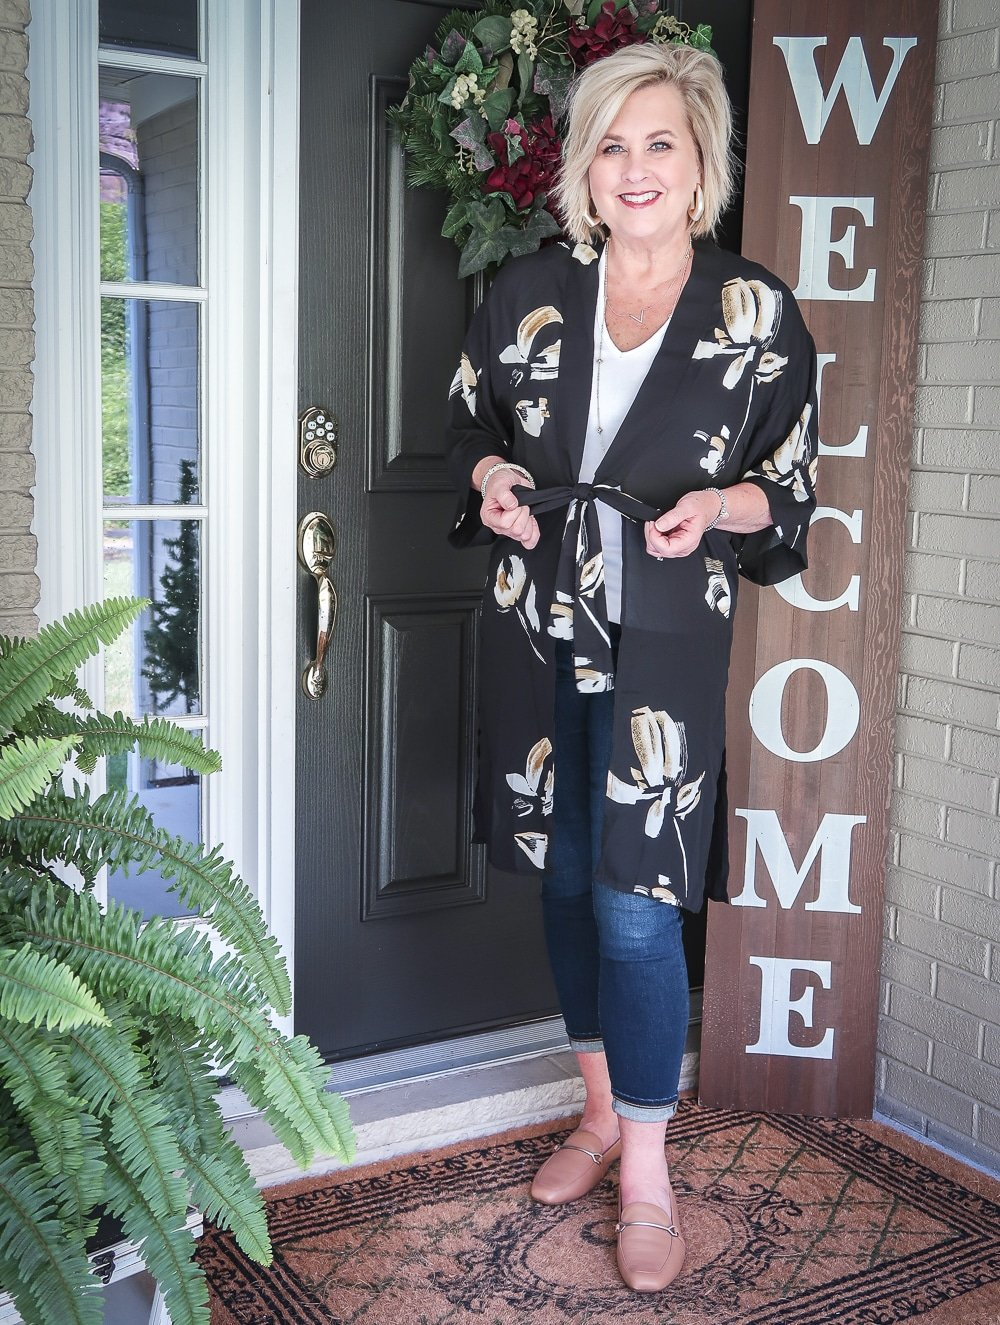 Fashion Blogger 50 Is Not Old is doing a Tuesday Try-On Session with Target and styling a black floral kimono with a white v-neck tee shirt